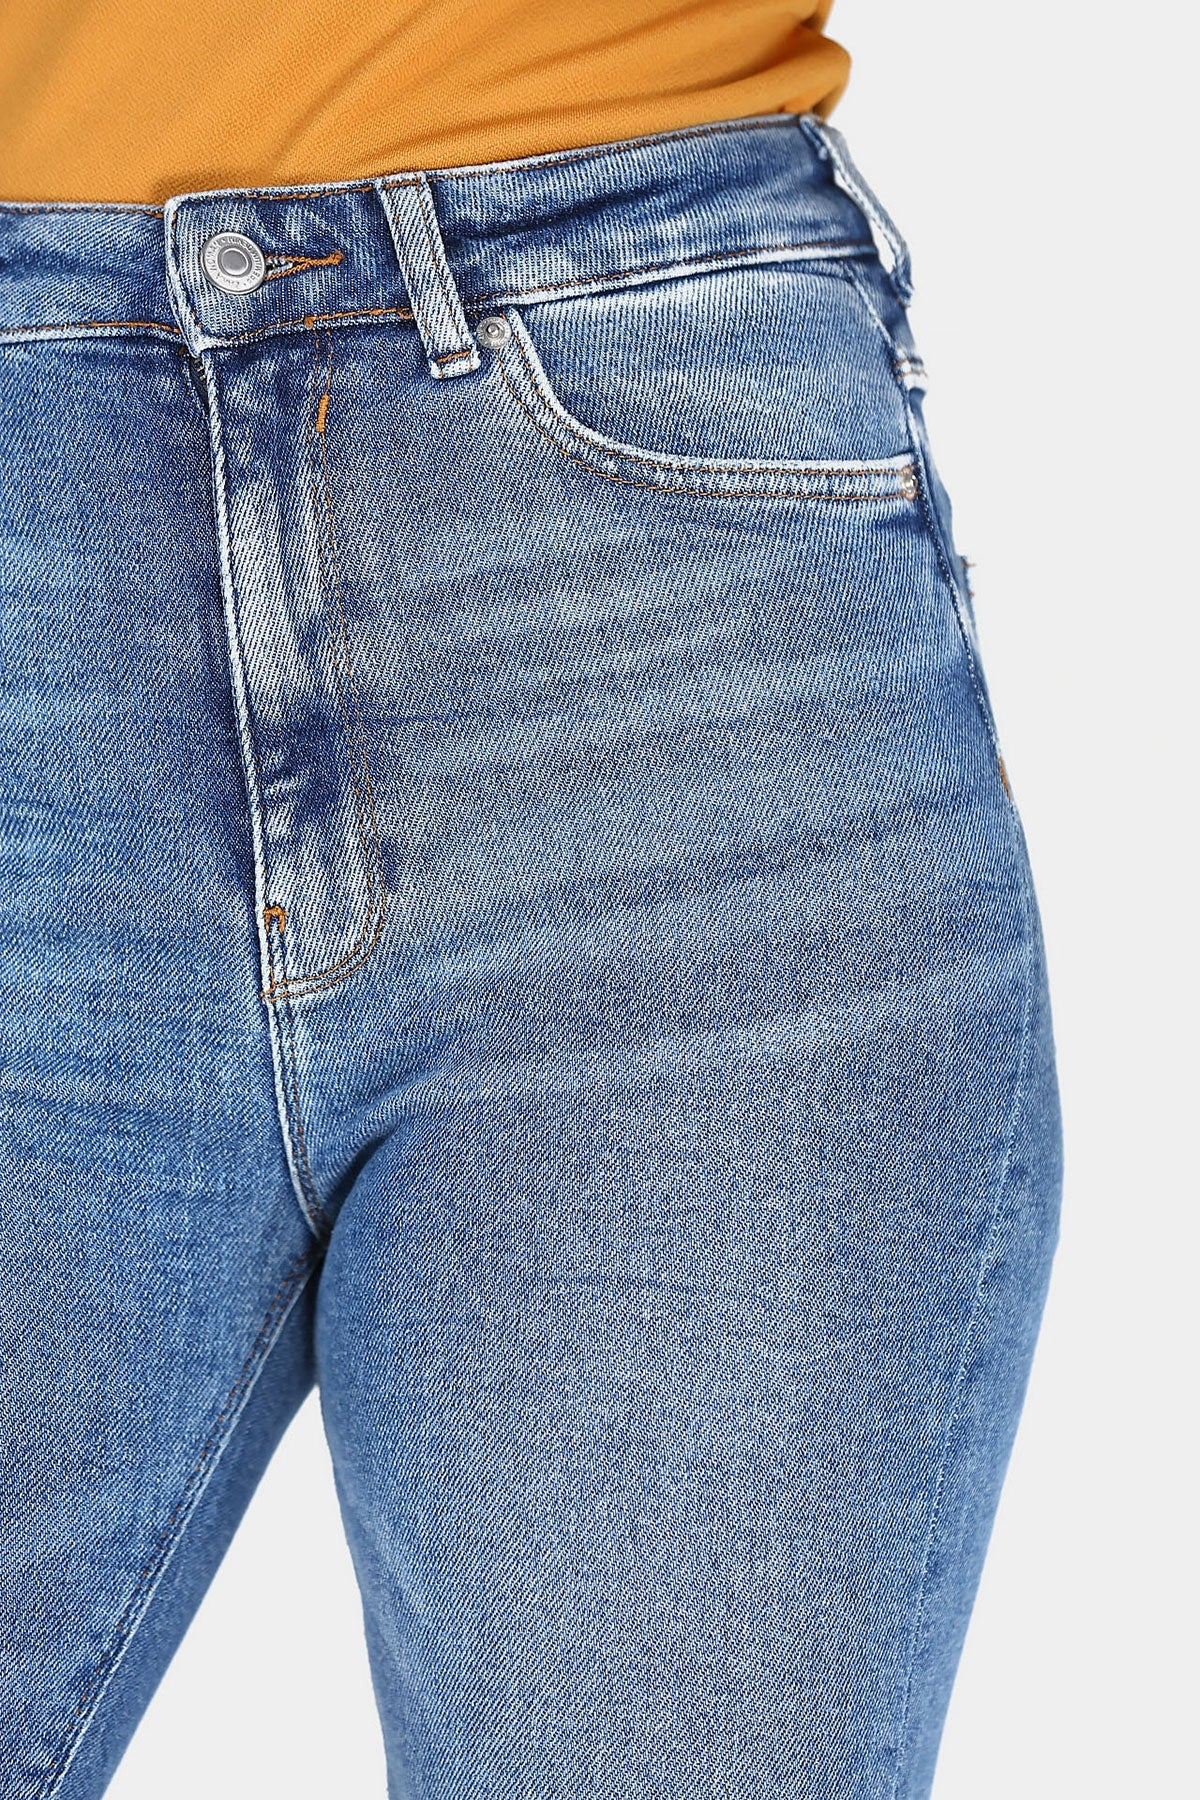 Women's Ripped Blue Jeans